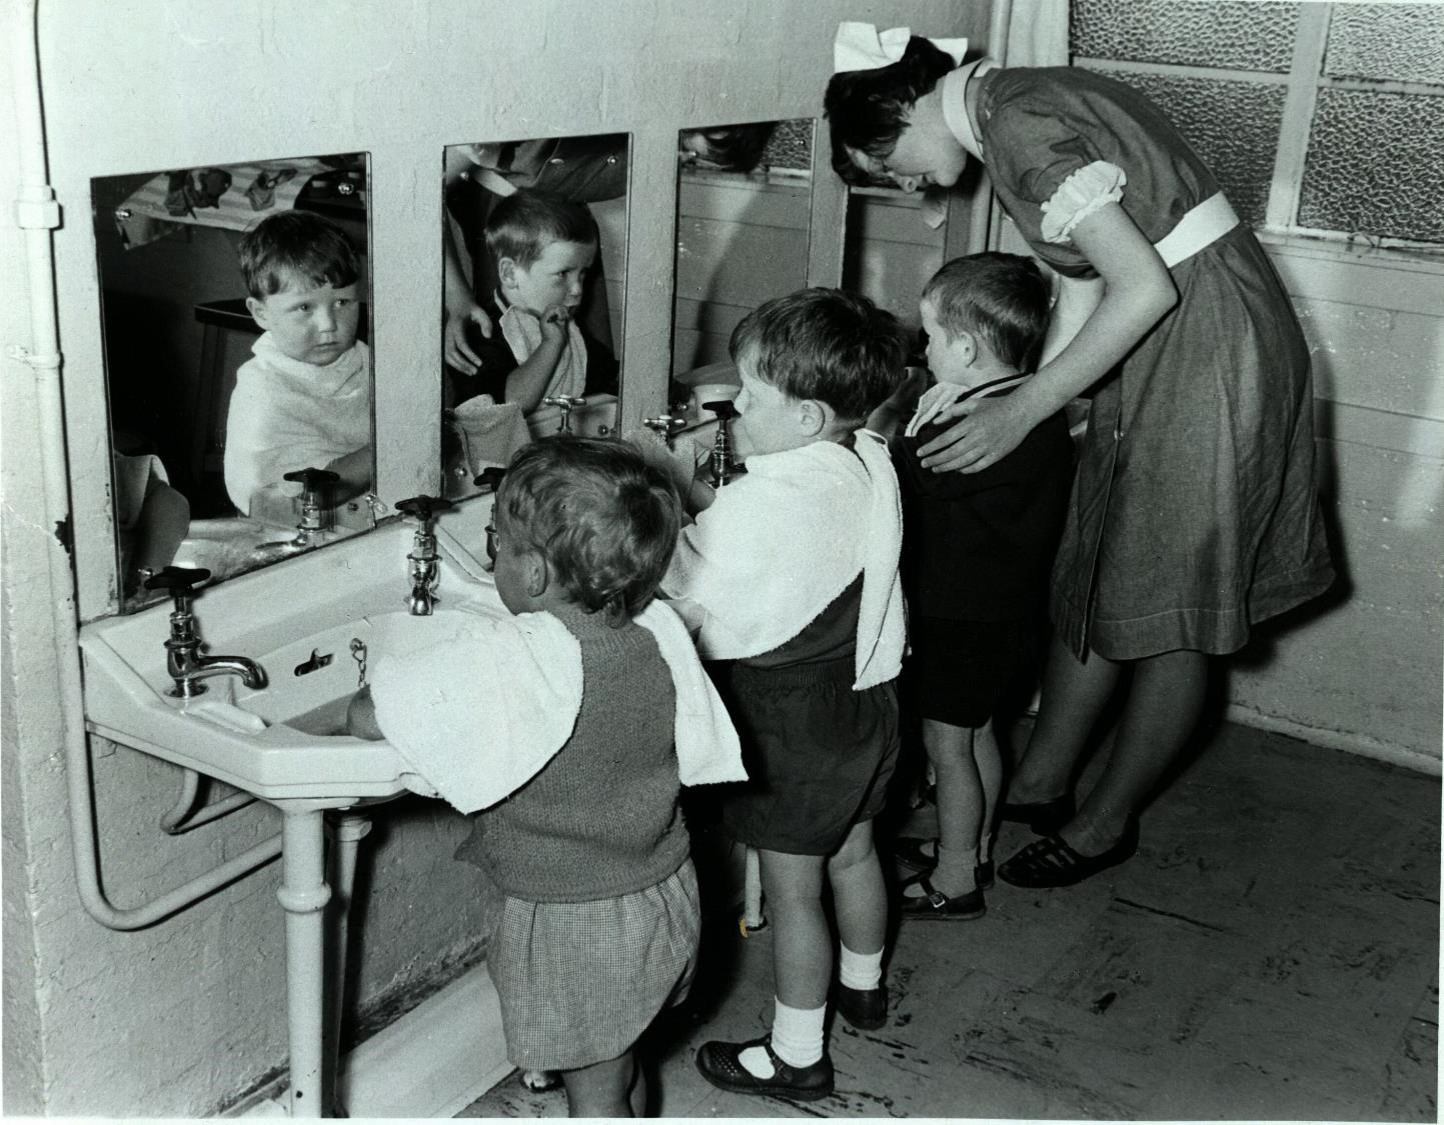 Primary school age children across the city were signed-up in the 60s for a lifelong study